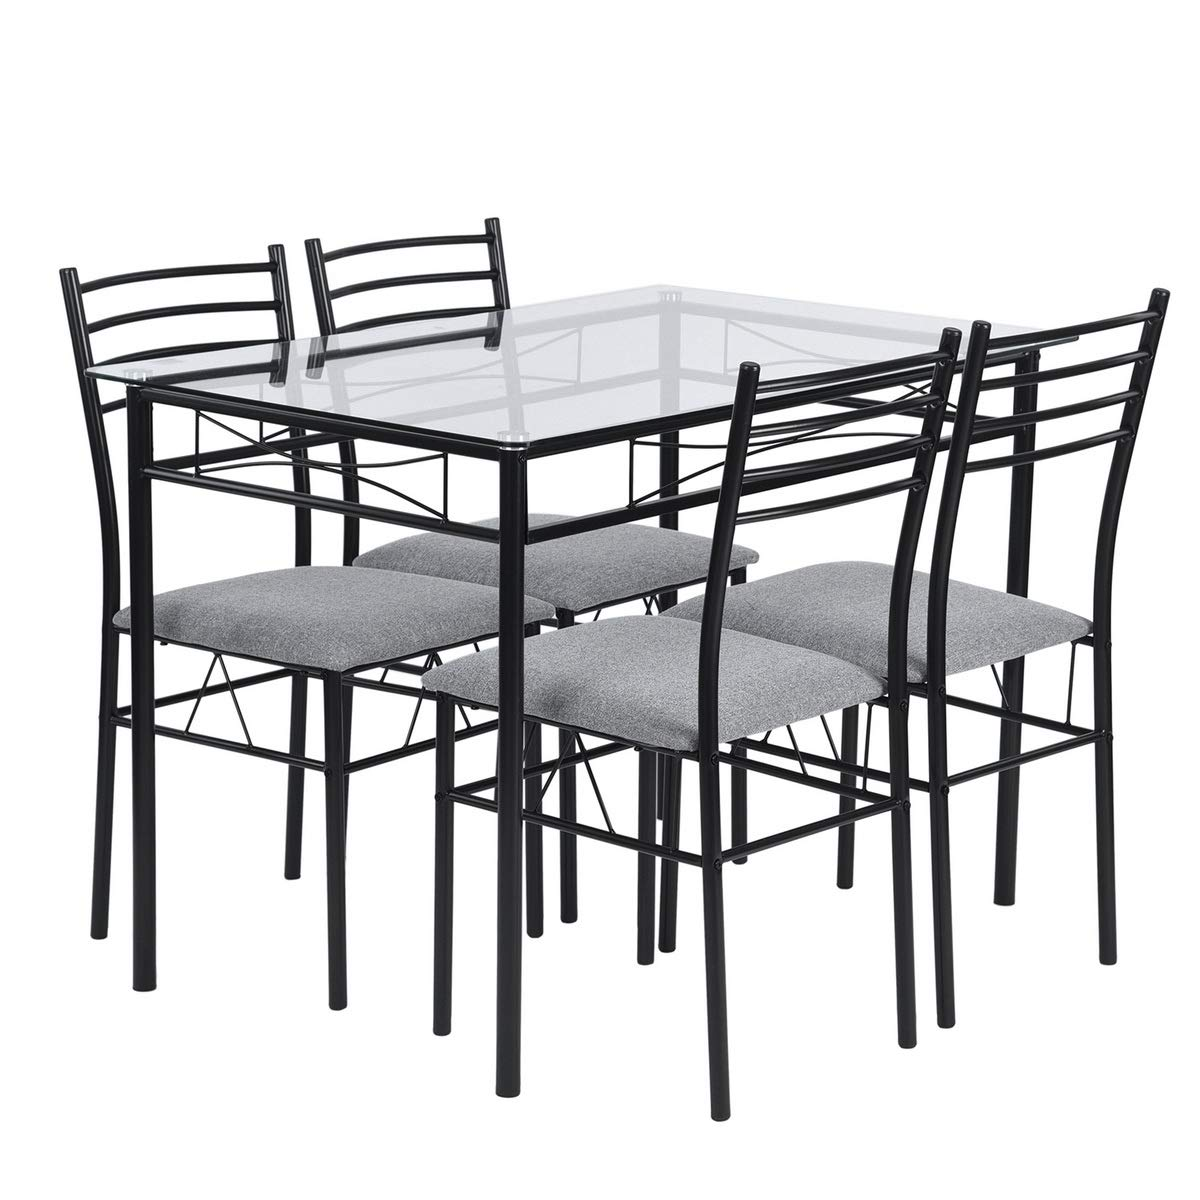 Warmcentre 5 Piece Table & Chair Set,Dining Kitchen Table and 4 Chairs with Tempered Glass Steel Tube Legs Dining Room Living Room Home Furniture,Black